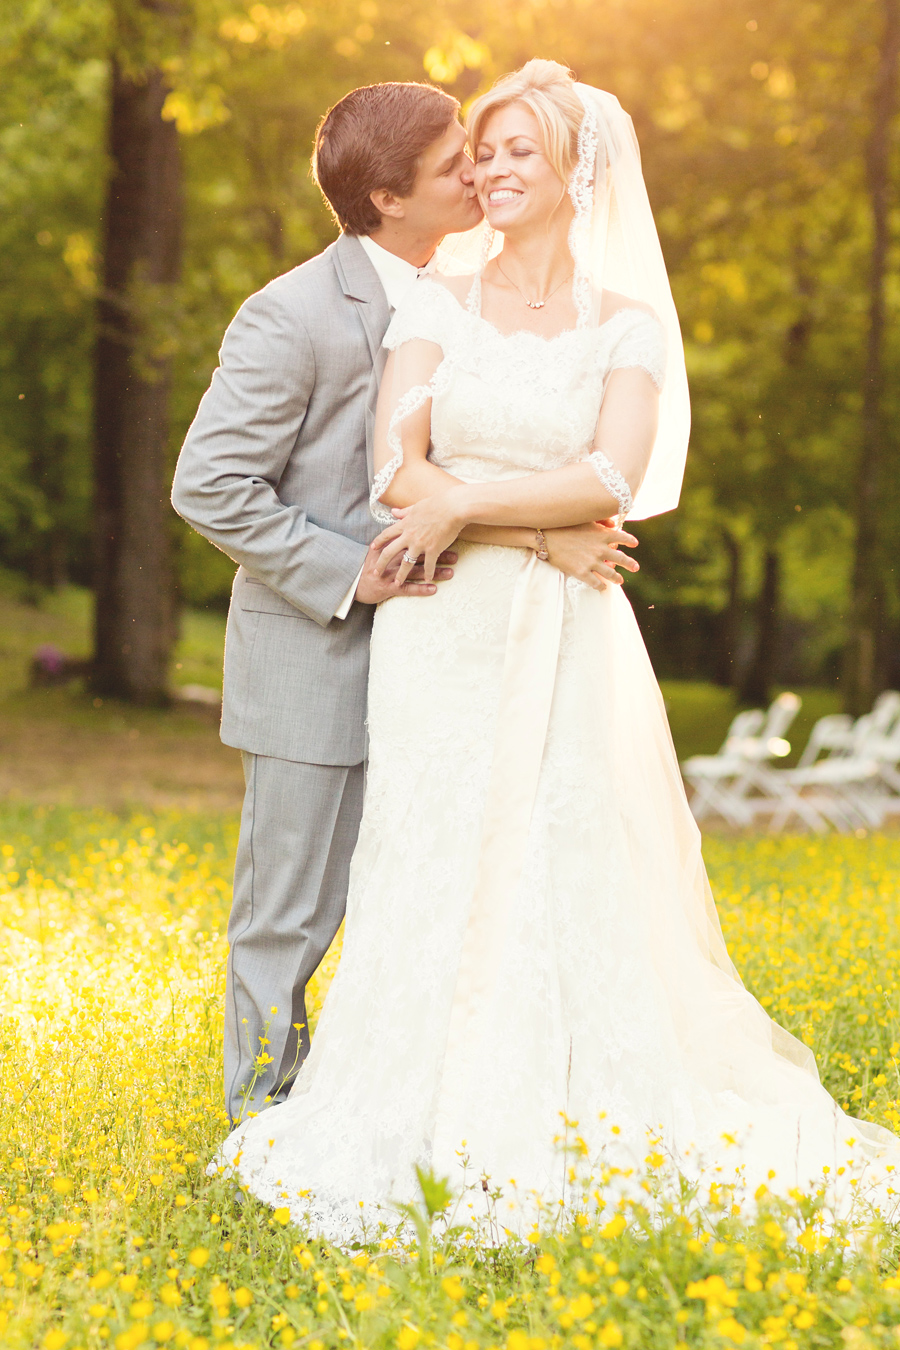 zach and sarah photography whitehouse tennessee wedding photo 24